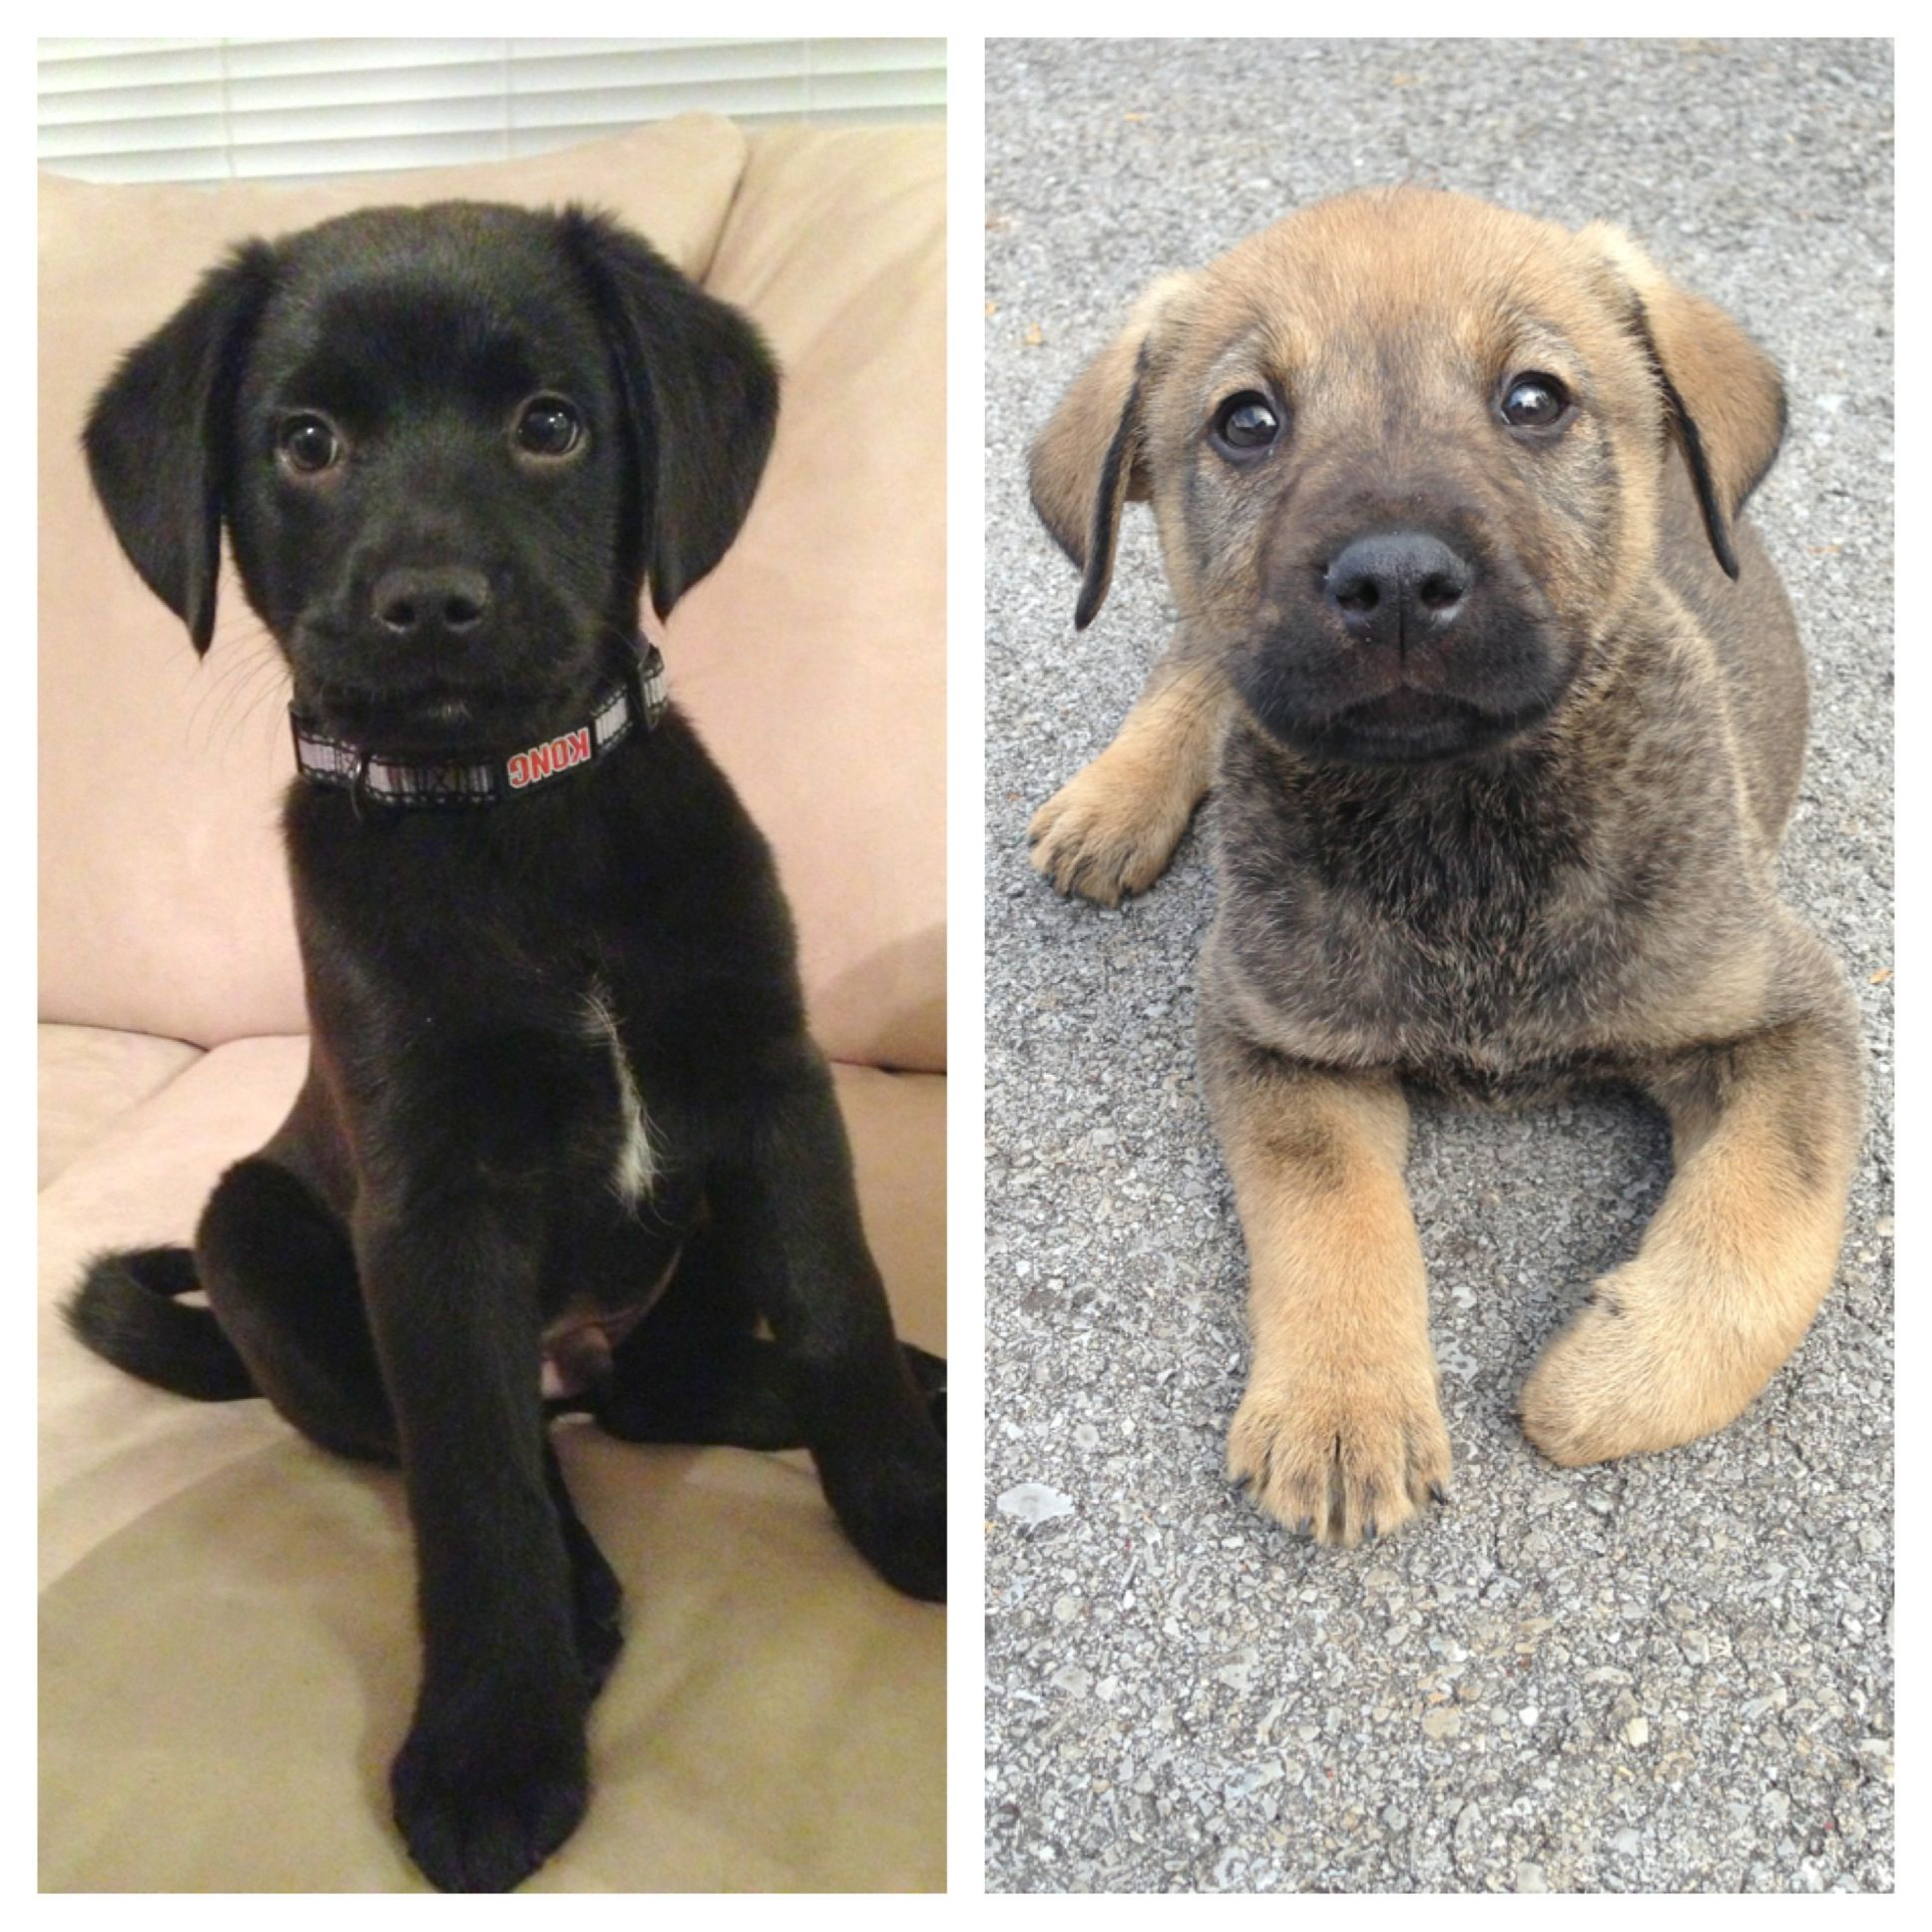 German Shepherd / Lab mix puppies! - Brothers - One Litter ...